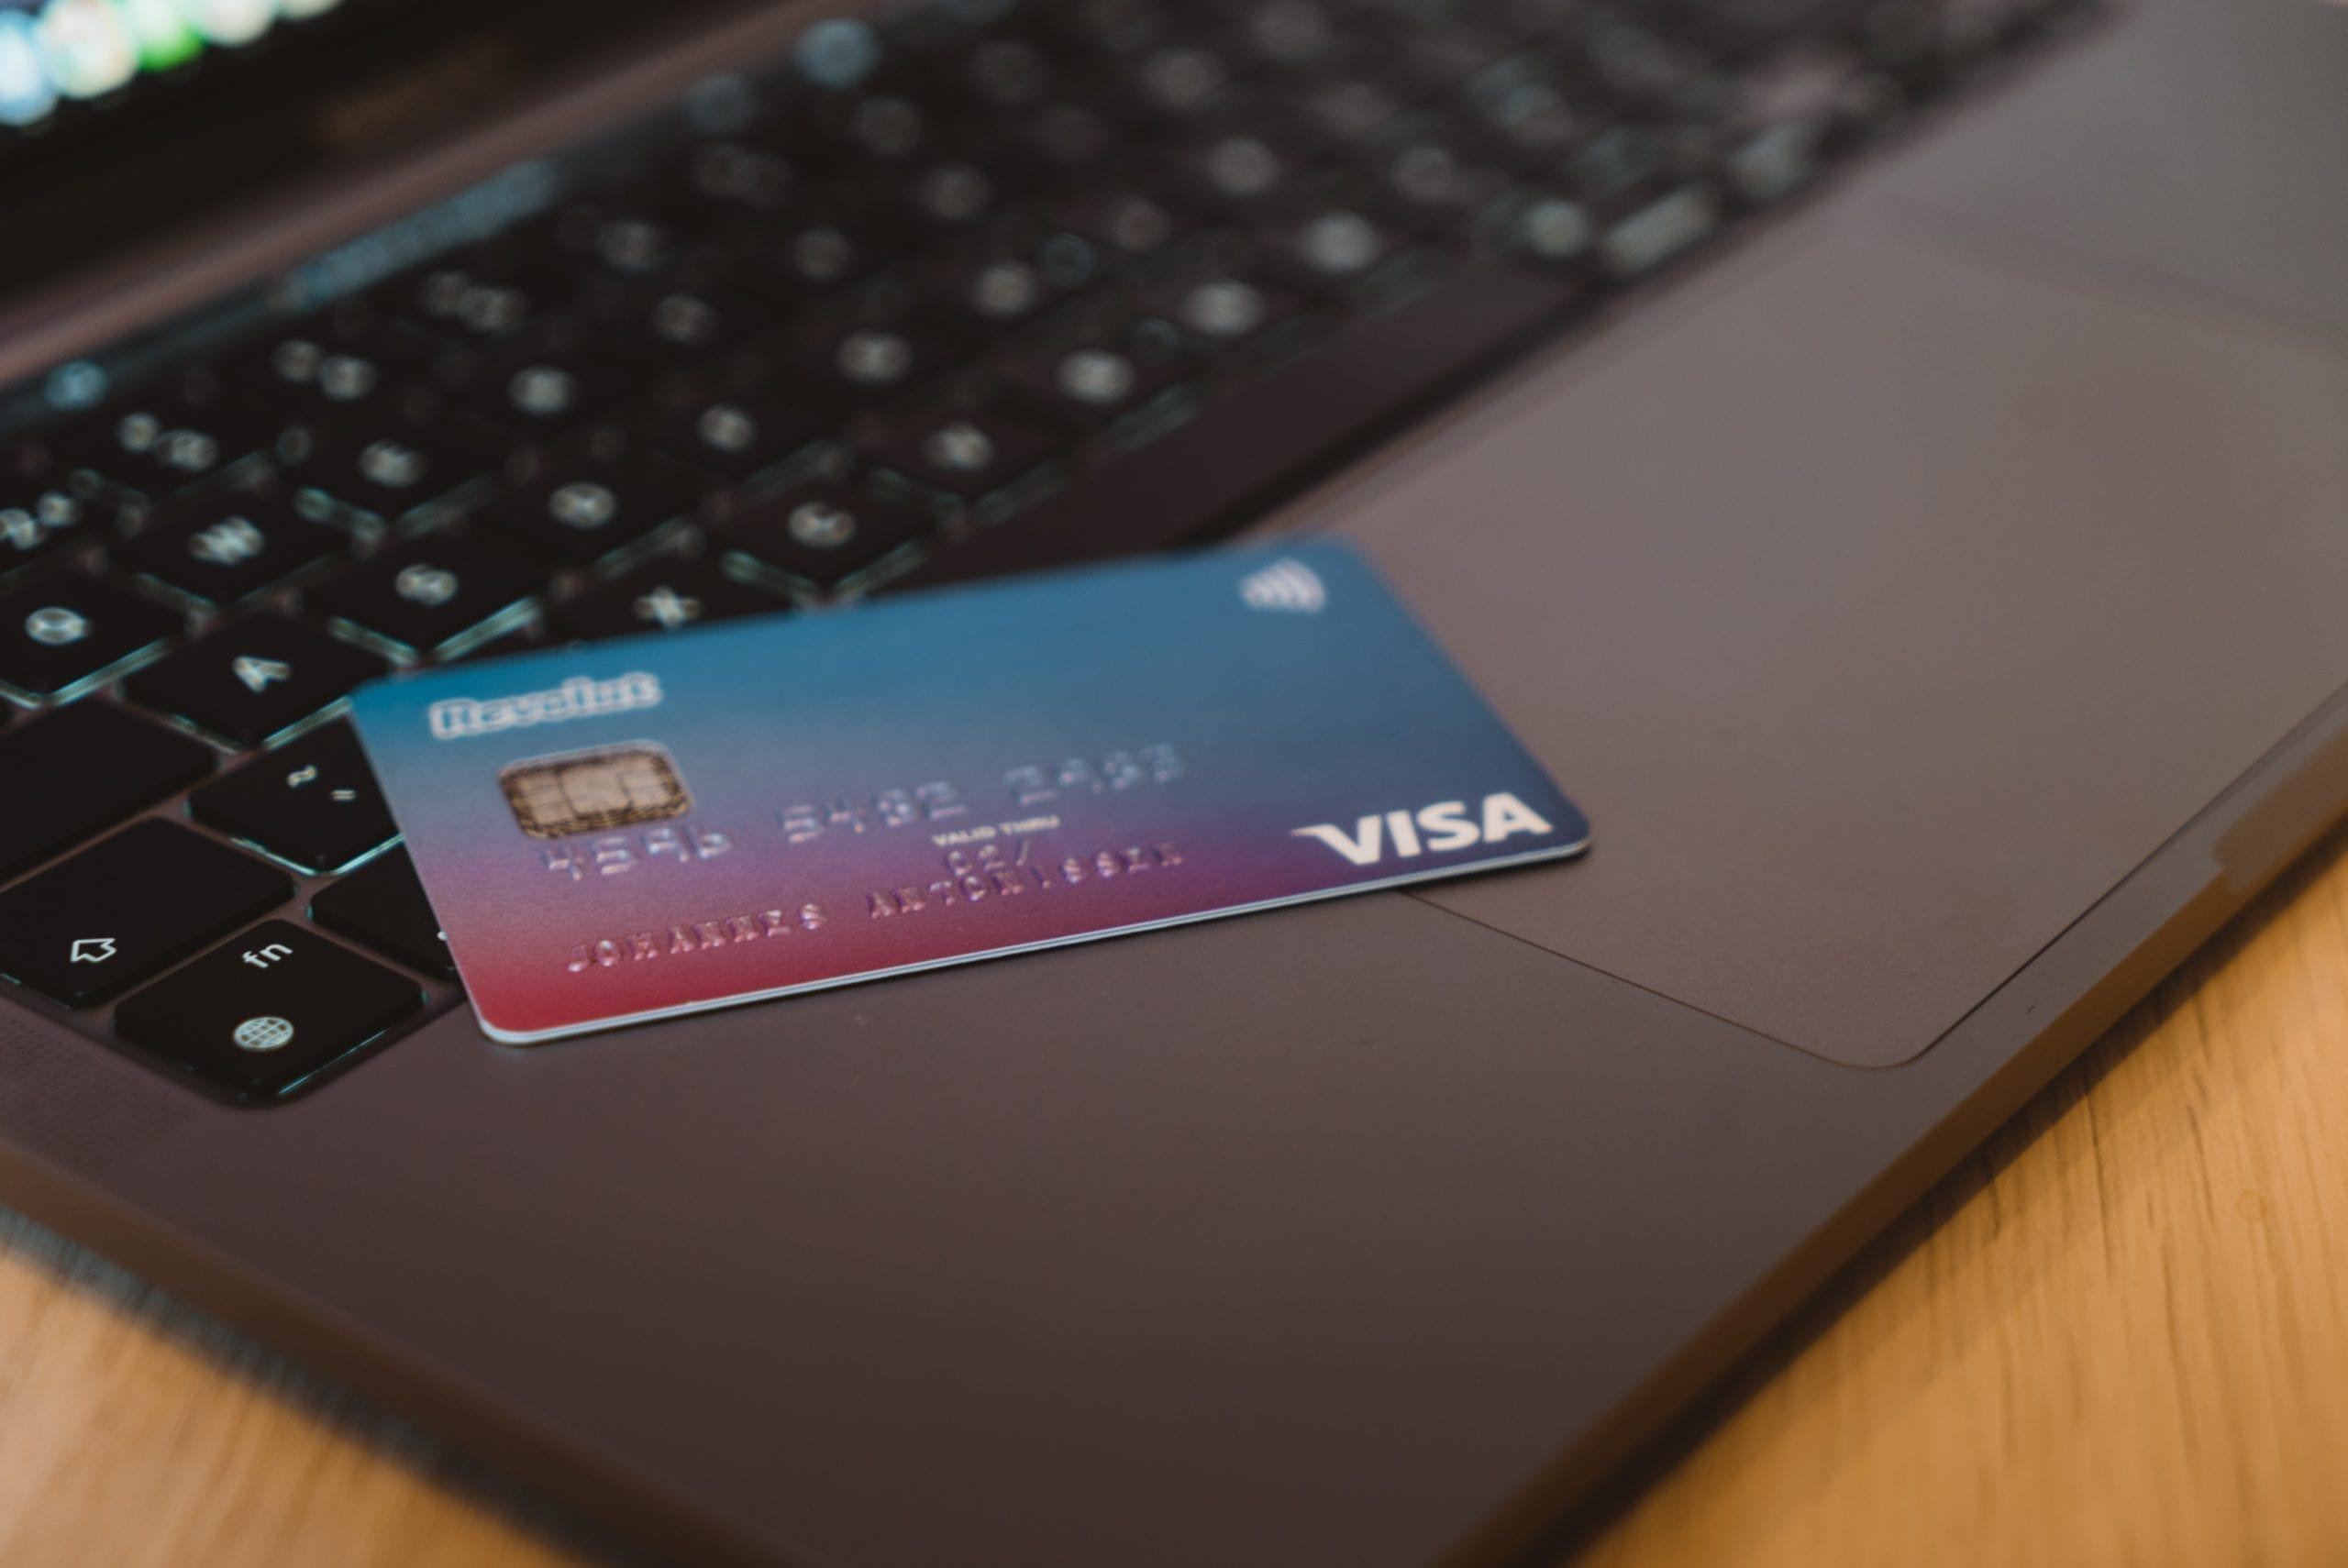 Closeup of visa credit card on laptop, in relation to acquiring credit